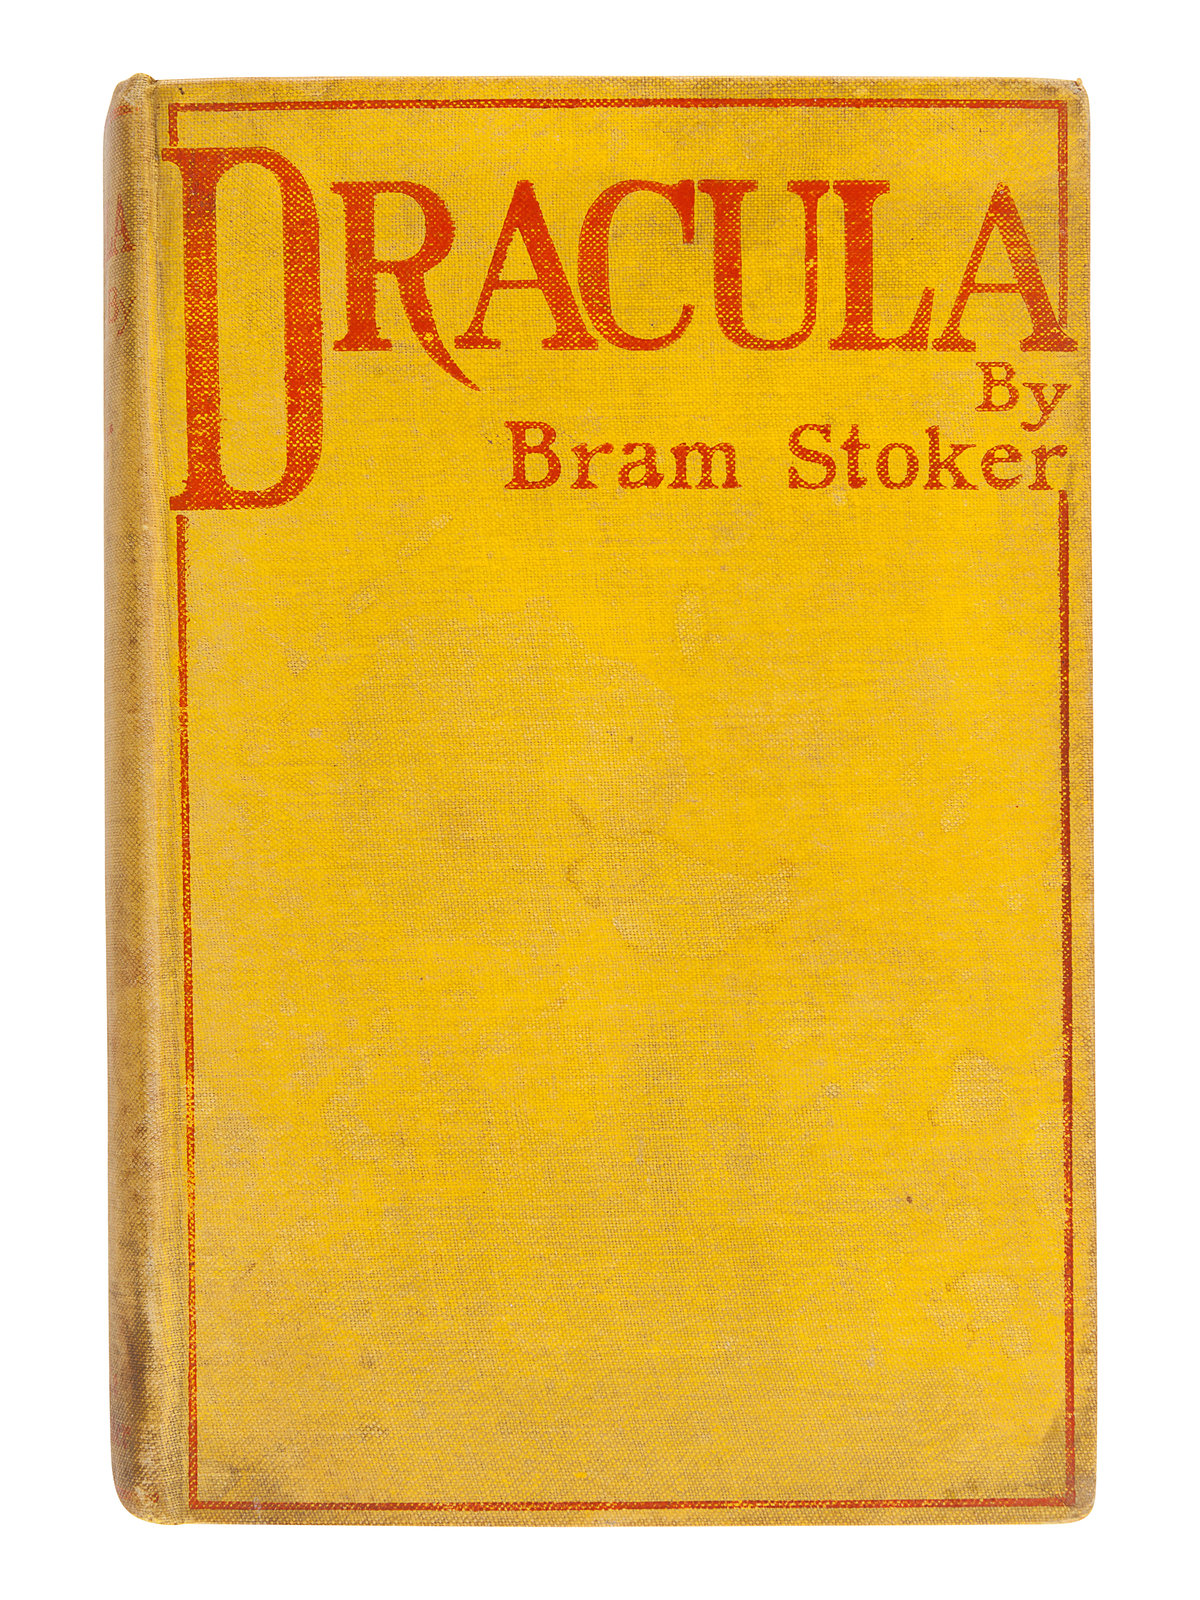 https://www.liveauctioneers.com/item/98327046_stoker-bram-1847-1912-dracula-westminster